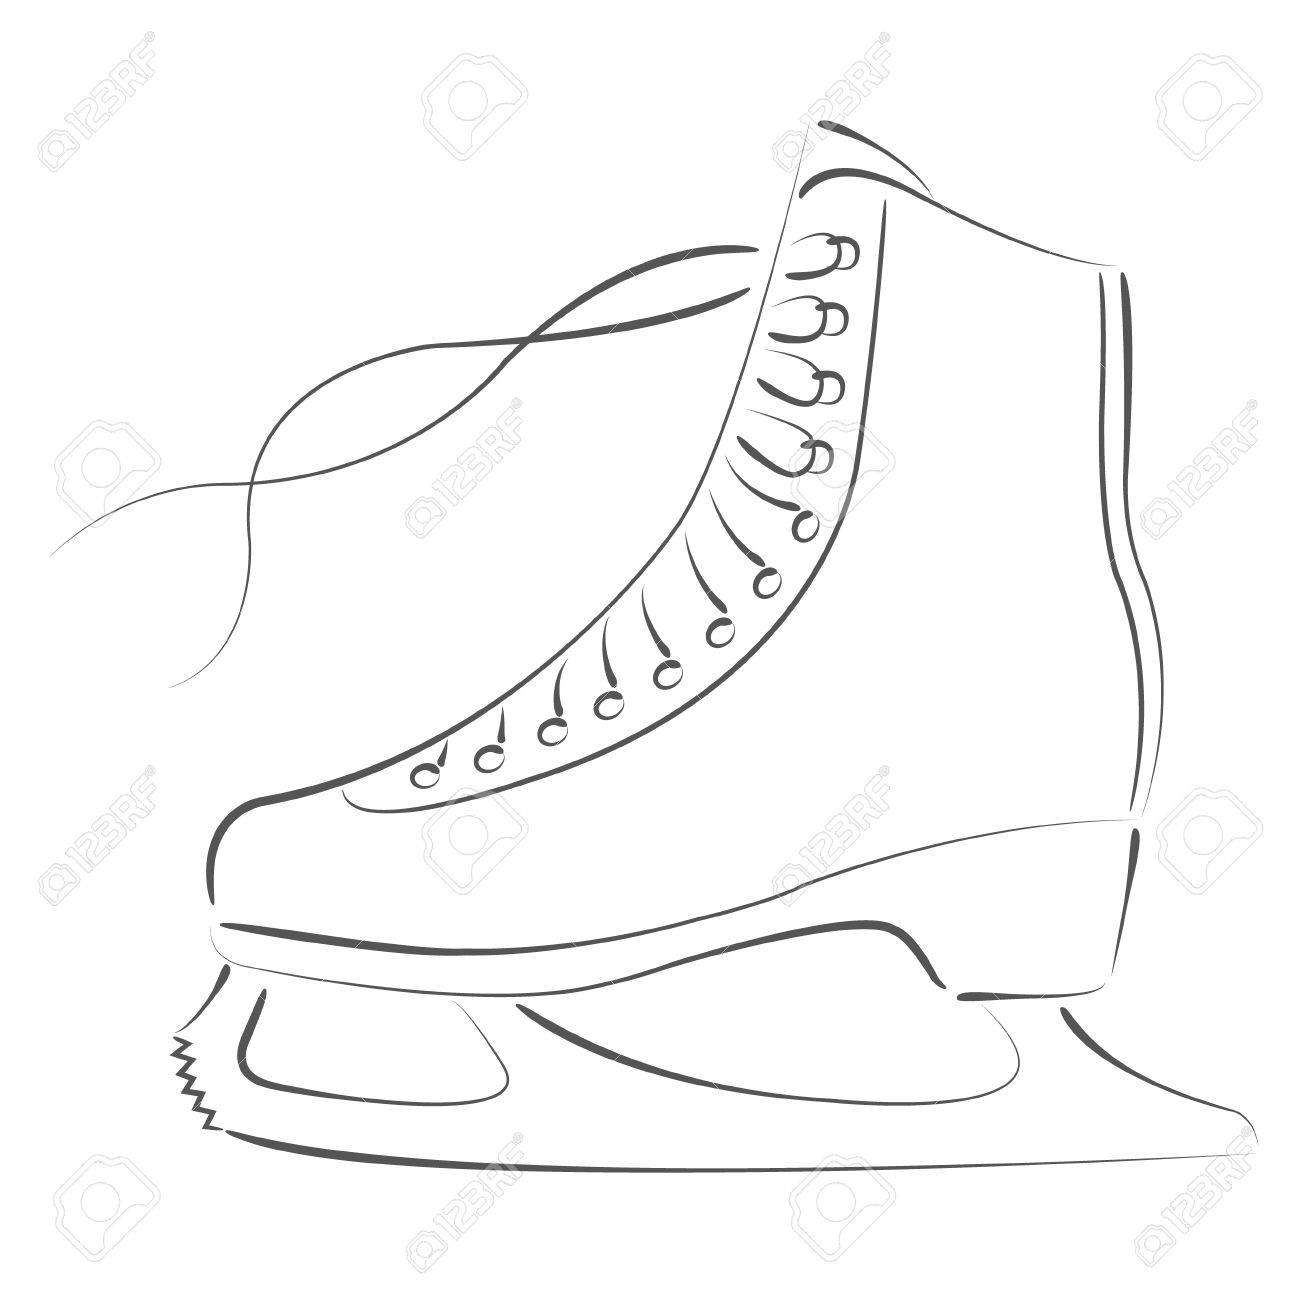 elegant sketched ice skates design template for label banner